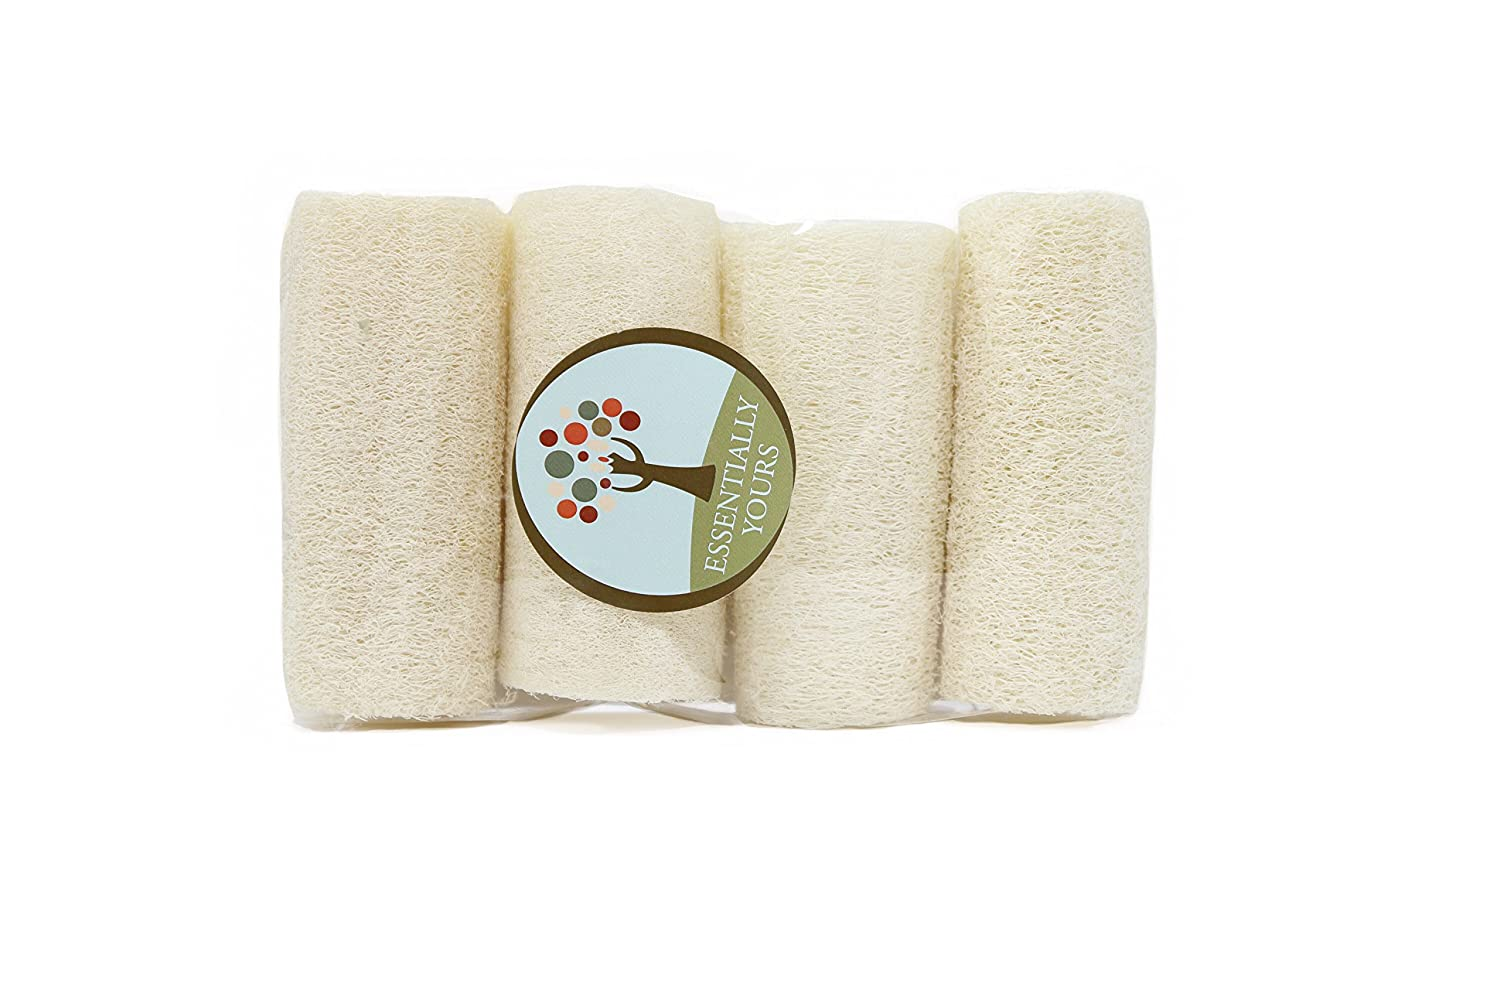 Natural Exfoliating Loofah Sponges | Natural Bath and Body Sponge, 4 Pack Essentially Yours